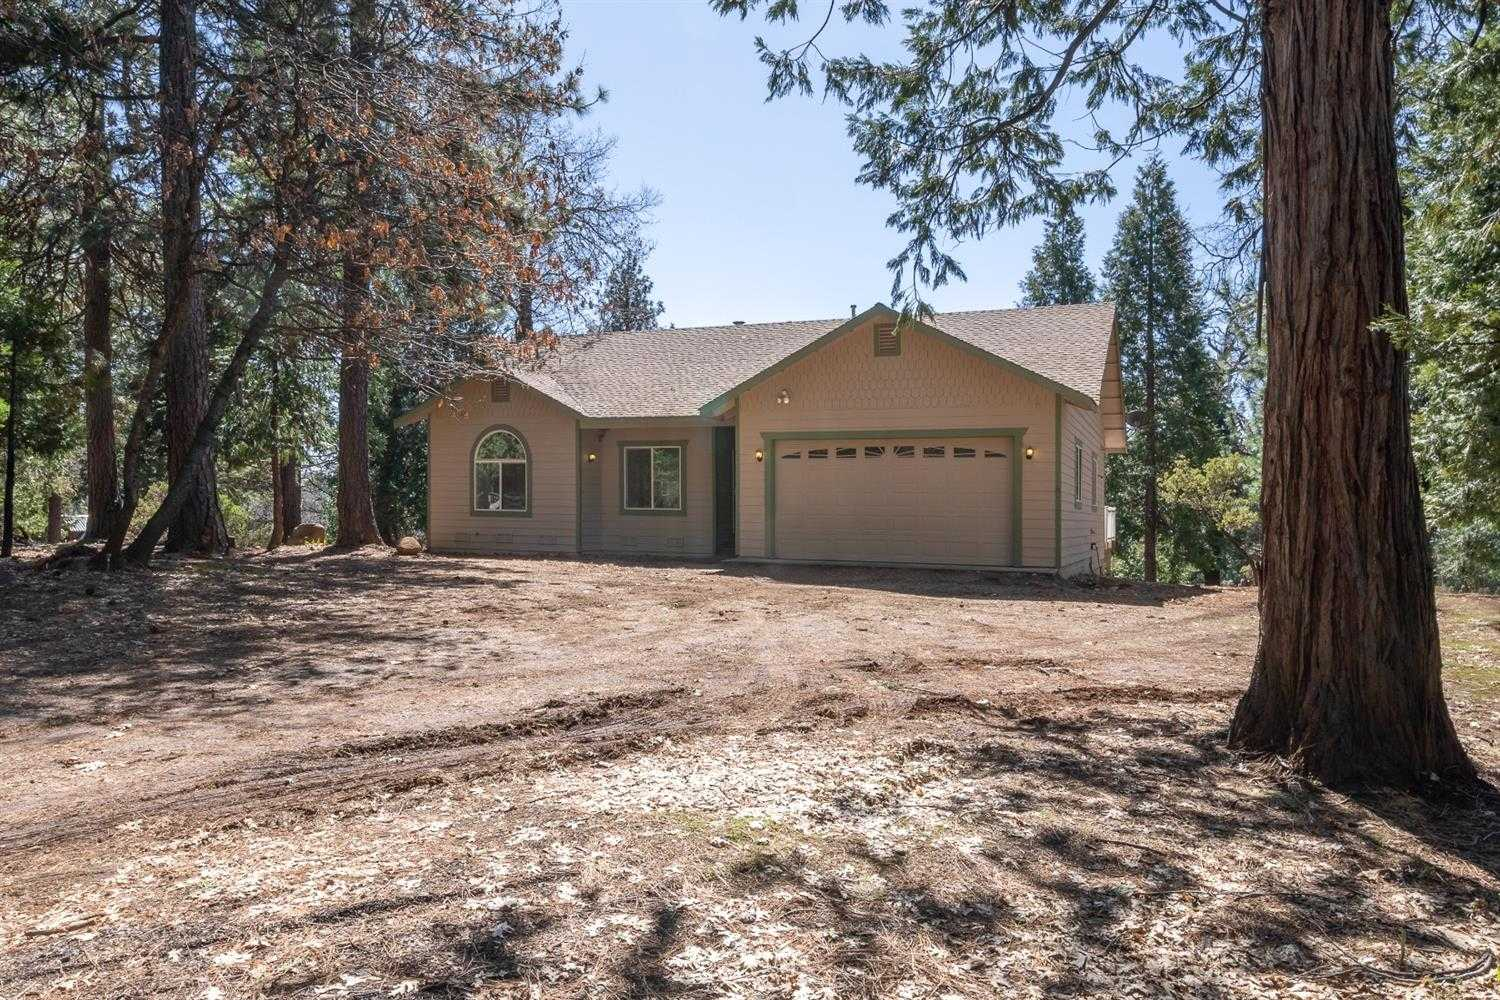 $575,000 - 3Br/2Ba -  for Sale in Pollock Pines